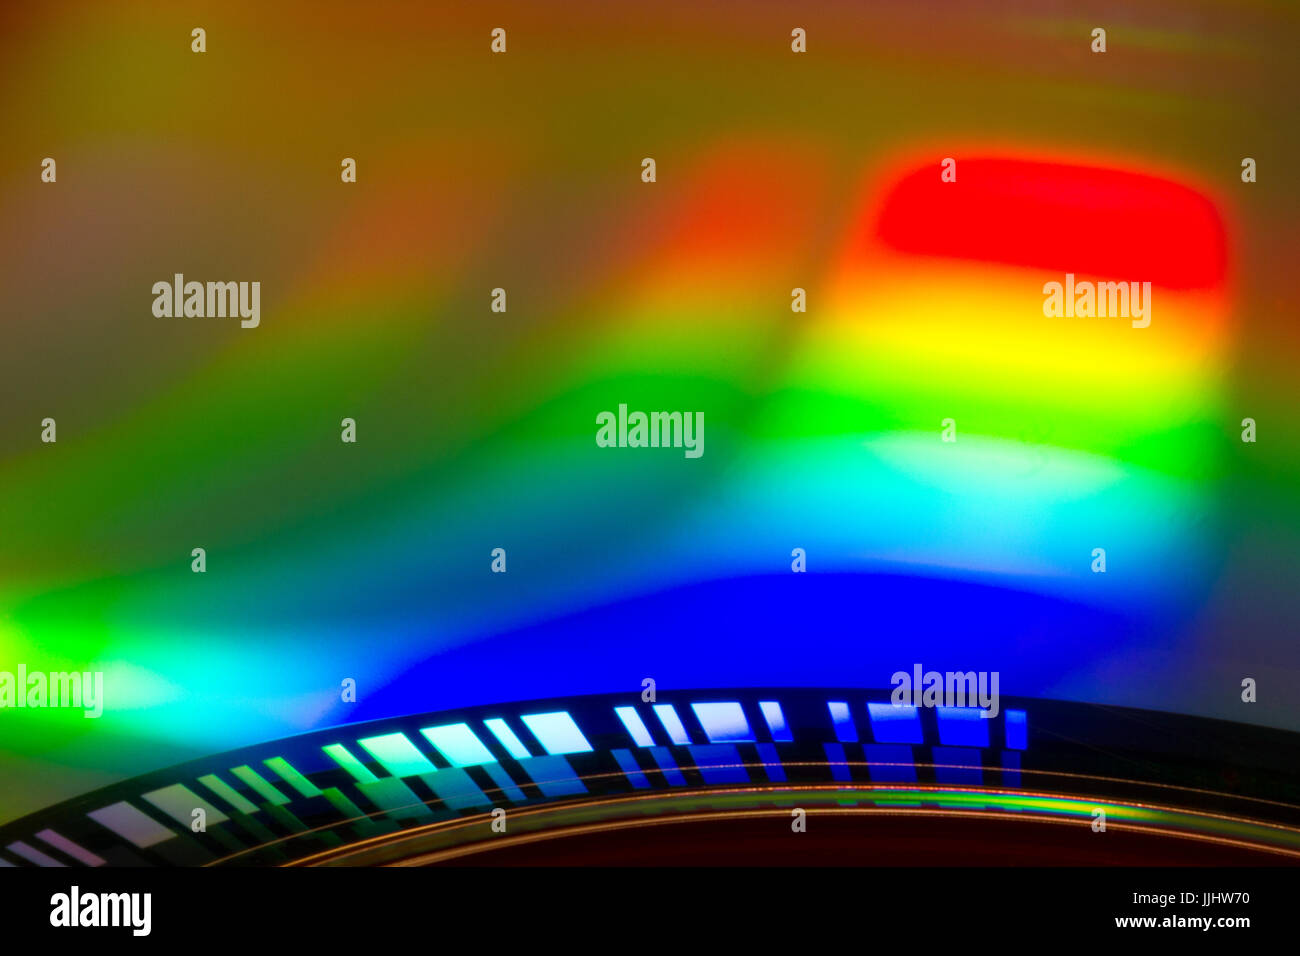 Rainbow colours caused by refracting light on surface of cd. - Stock Image